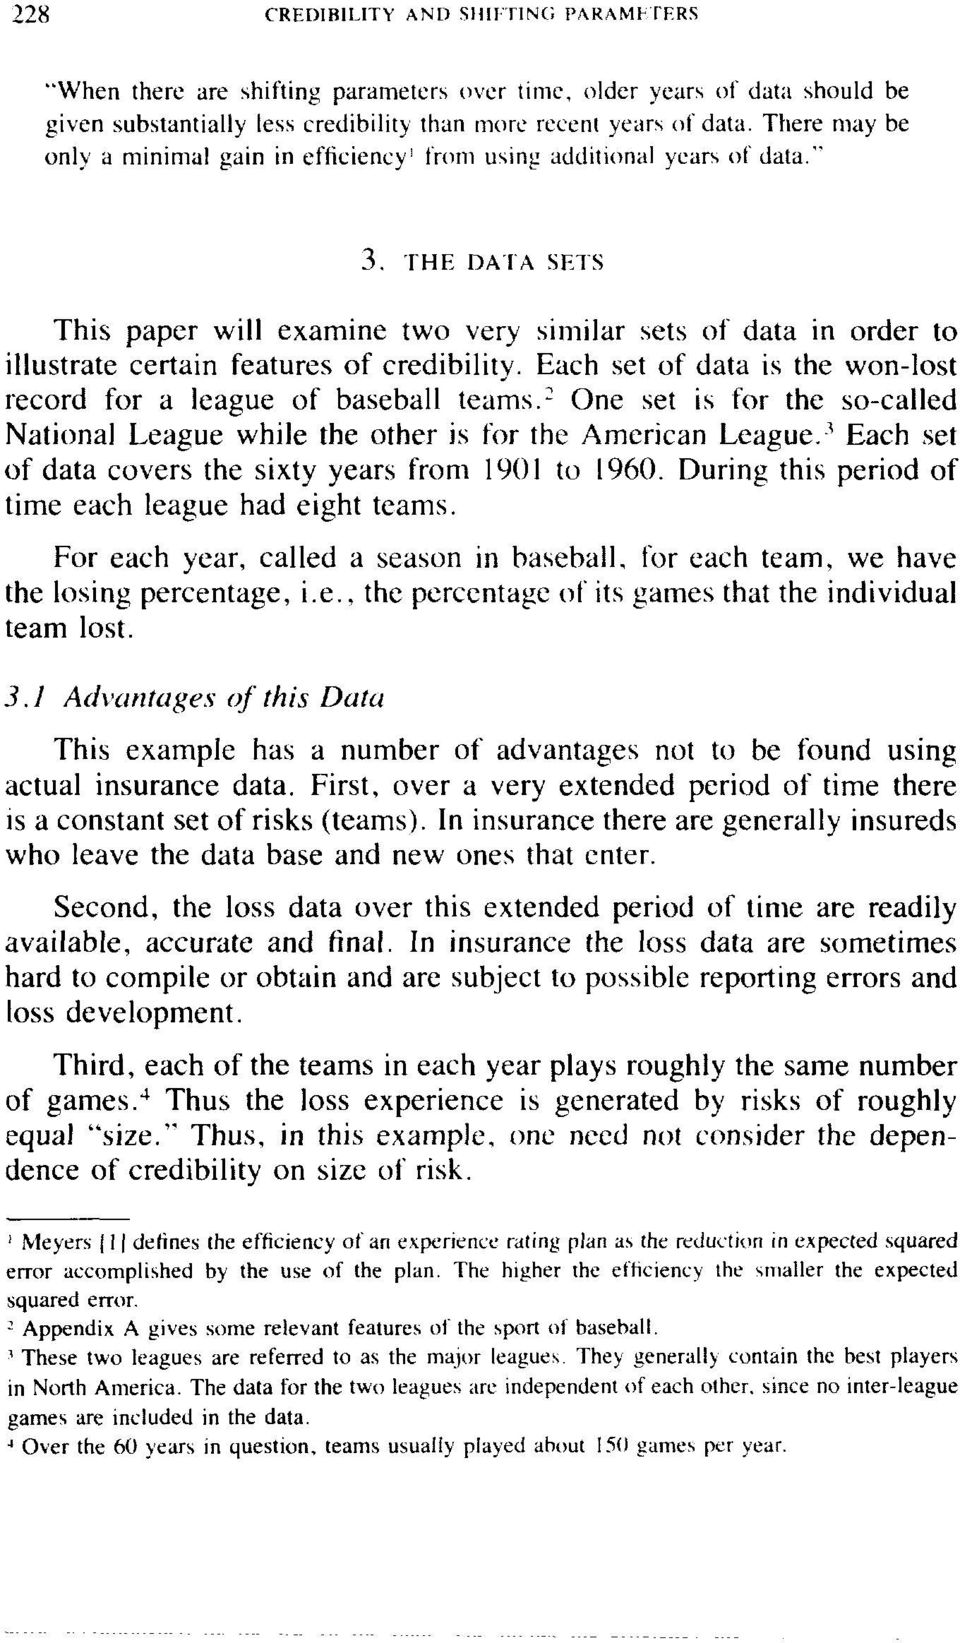 THE DATA SET-S This paper will examine two very similar sets of data in order to illustrate certain features of credibility. Each set of data is the won-lost record for a league of baseball teams.